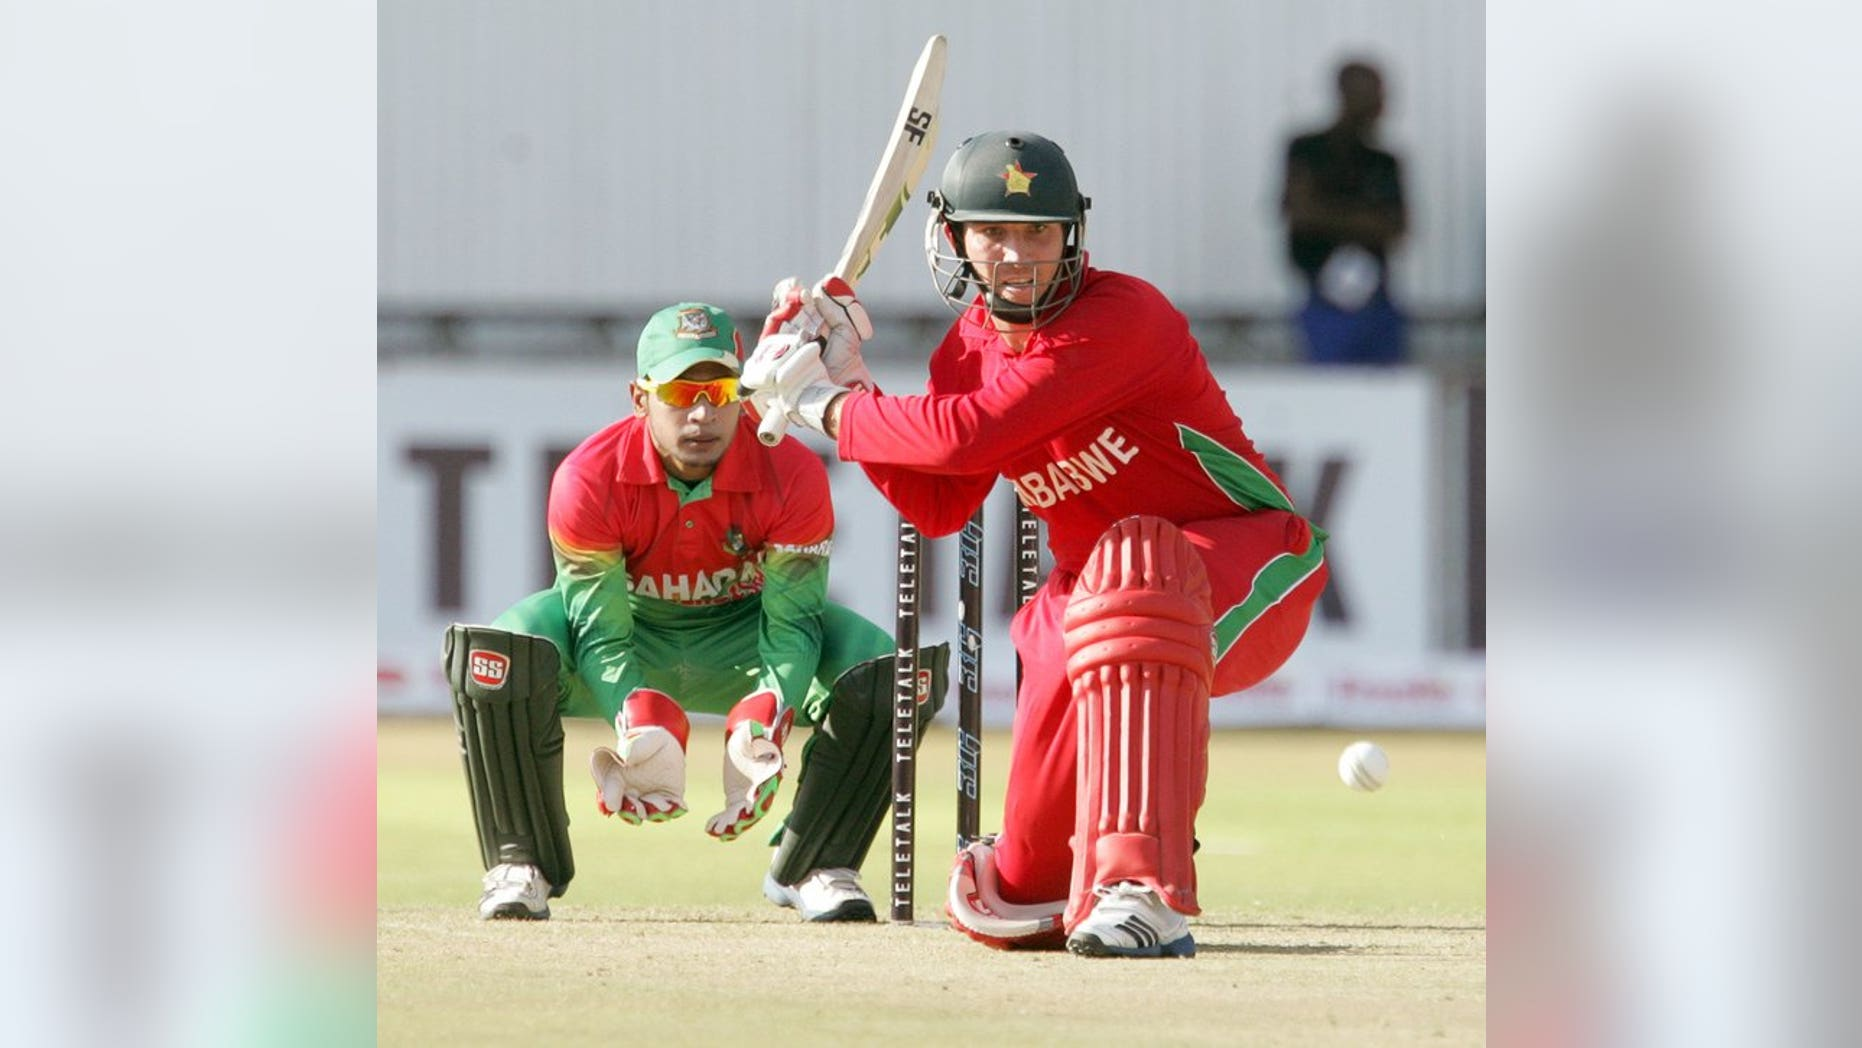 Brendan Taylor bats against Bangladesh in Bulawayo on May 12. Zimbabwe's hopes of causing an upset against the world's best one-day side were given a boost when captain Taylor won a crucial toss and stuck India in to bat in the second one-day international.